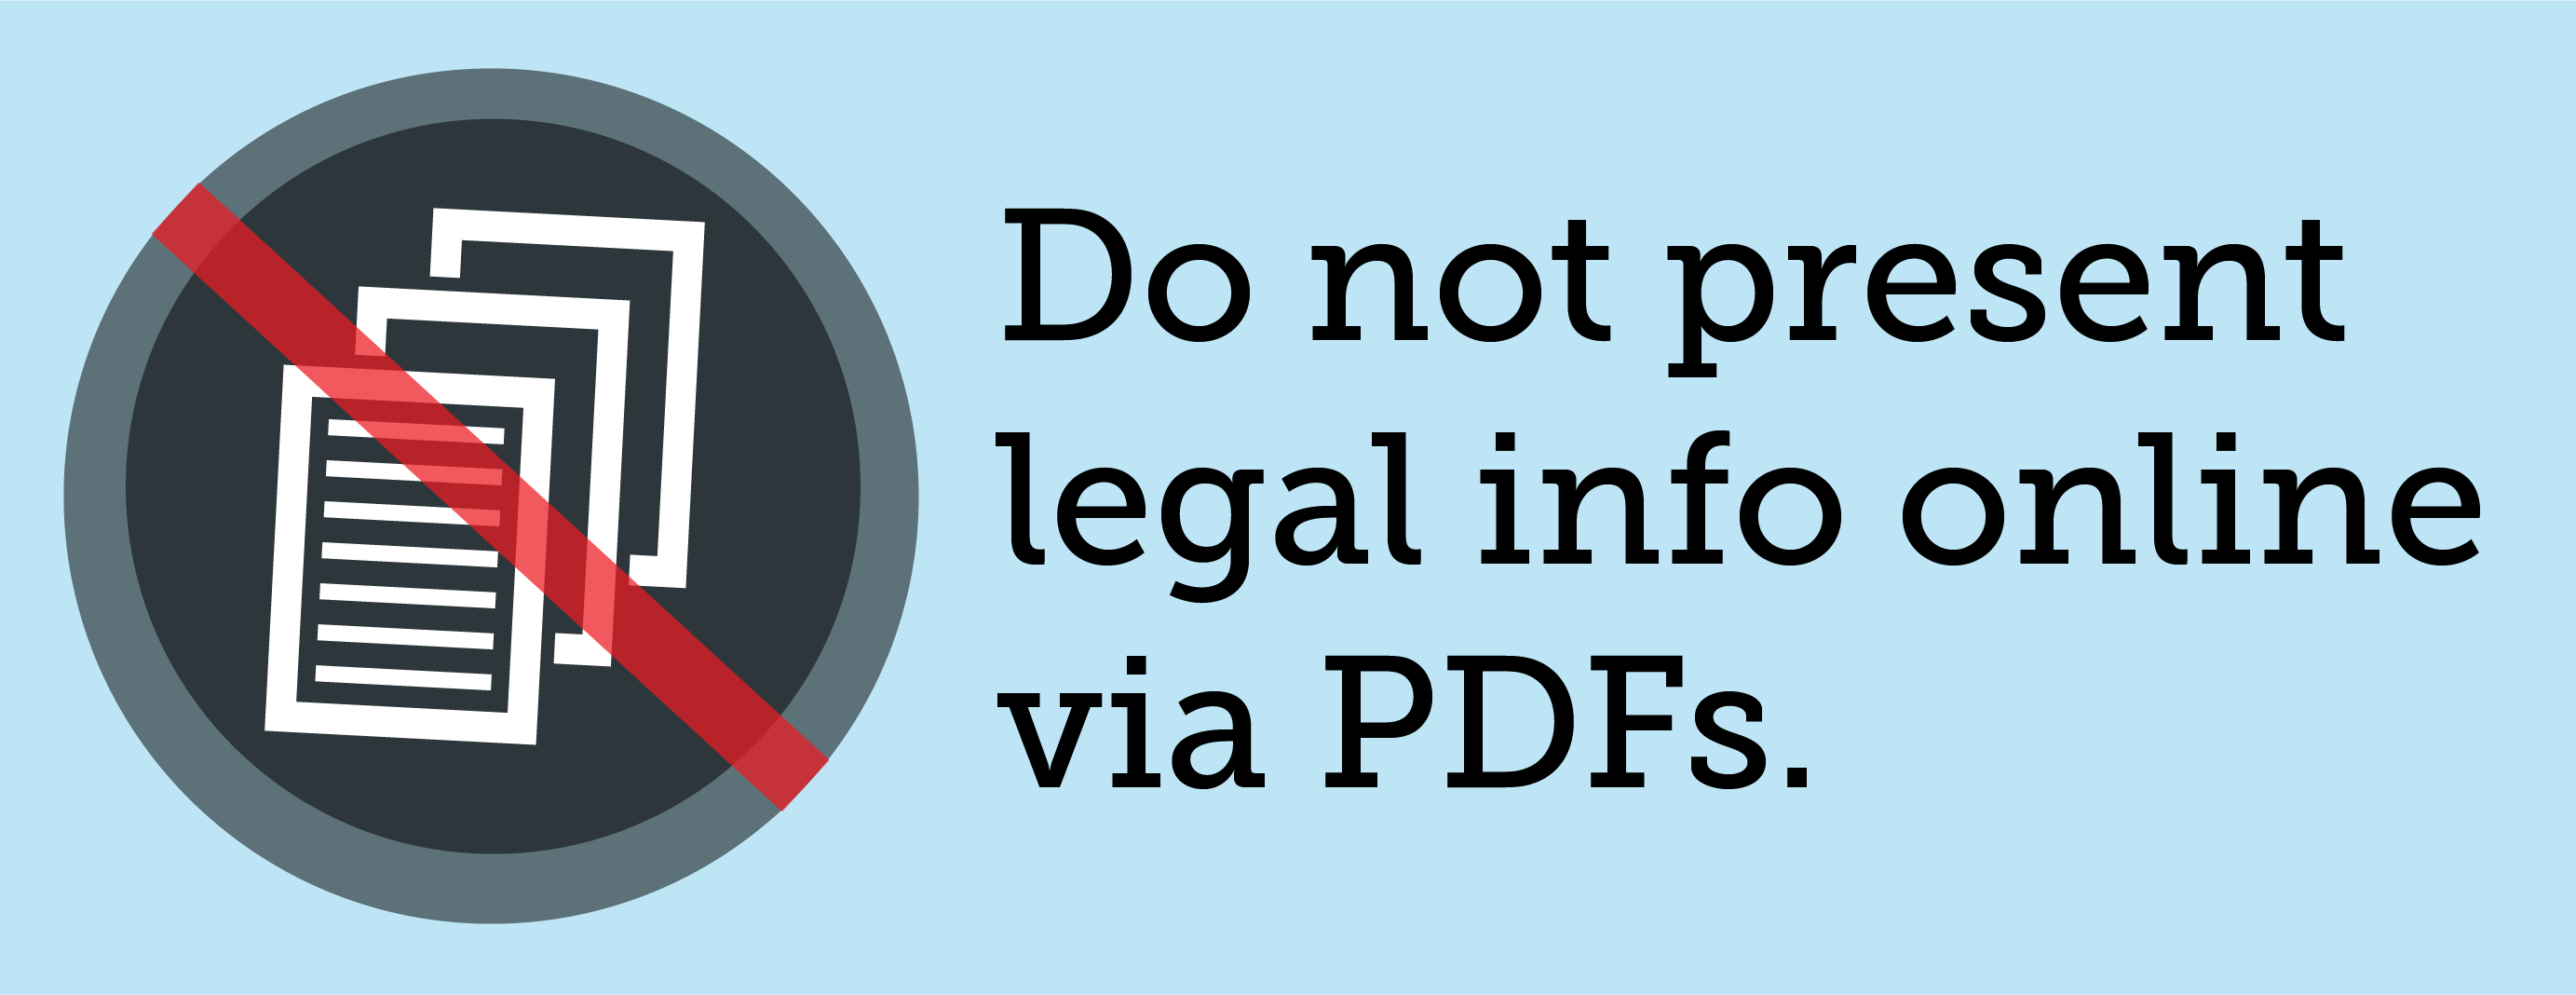 No Pdfs for legal information online - by Margaret Hagan - Open Law Lab-02